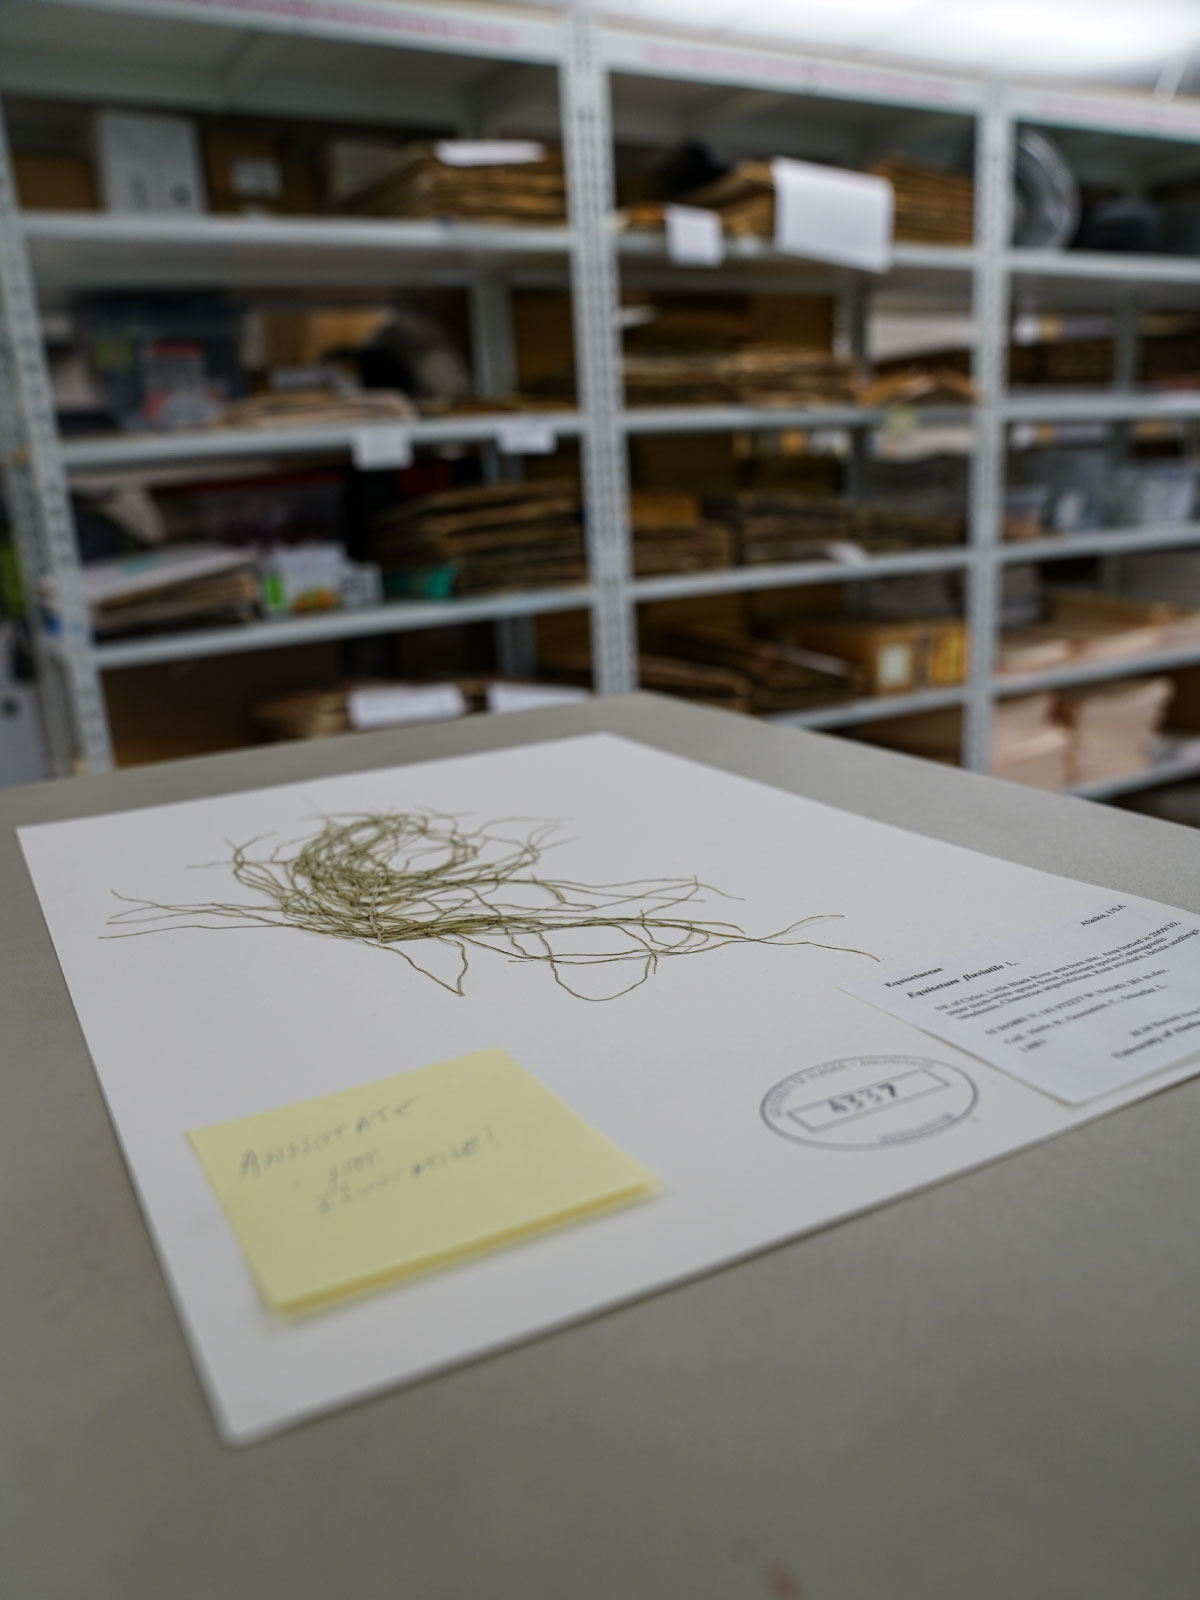 vegetation sample in the UAA Herbarium